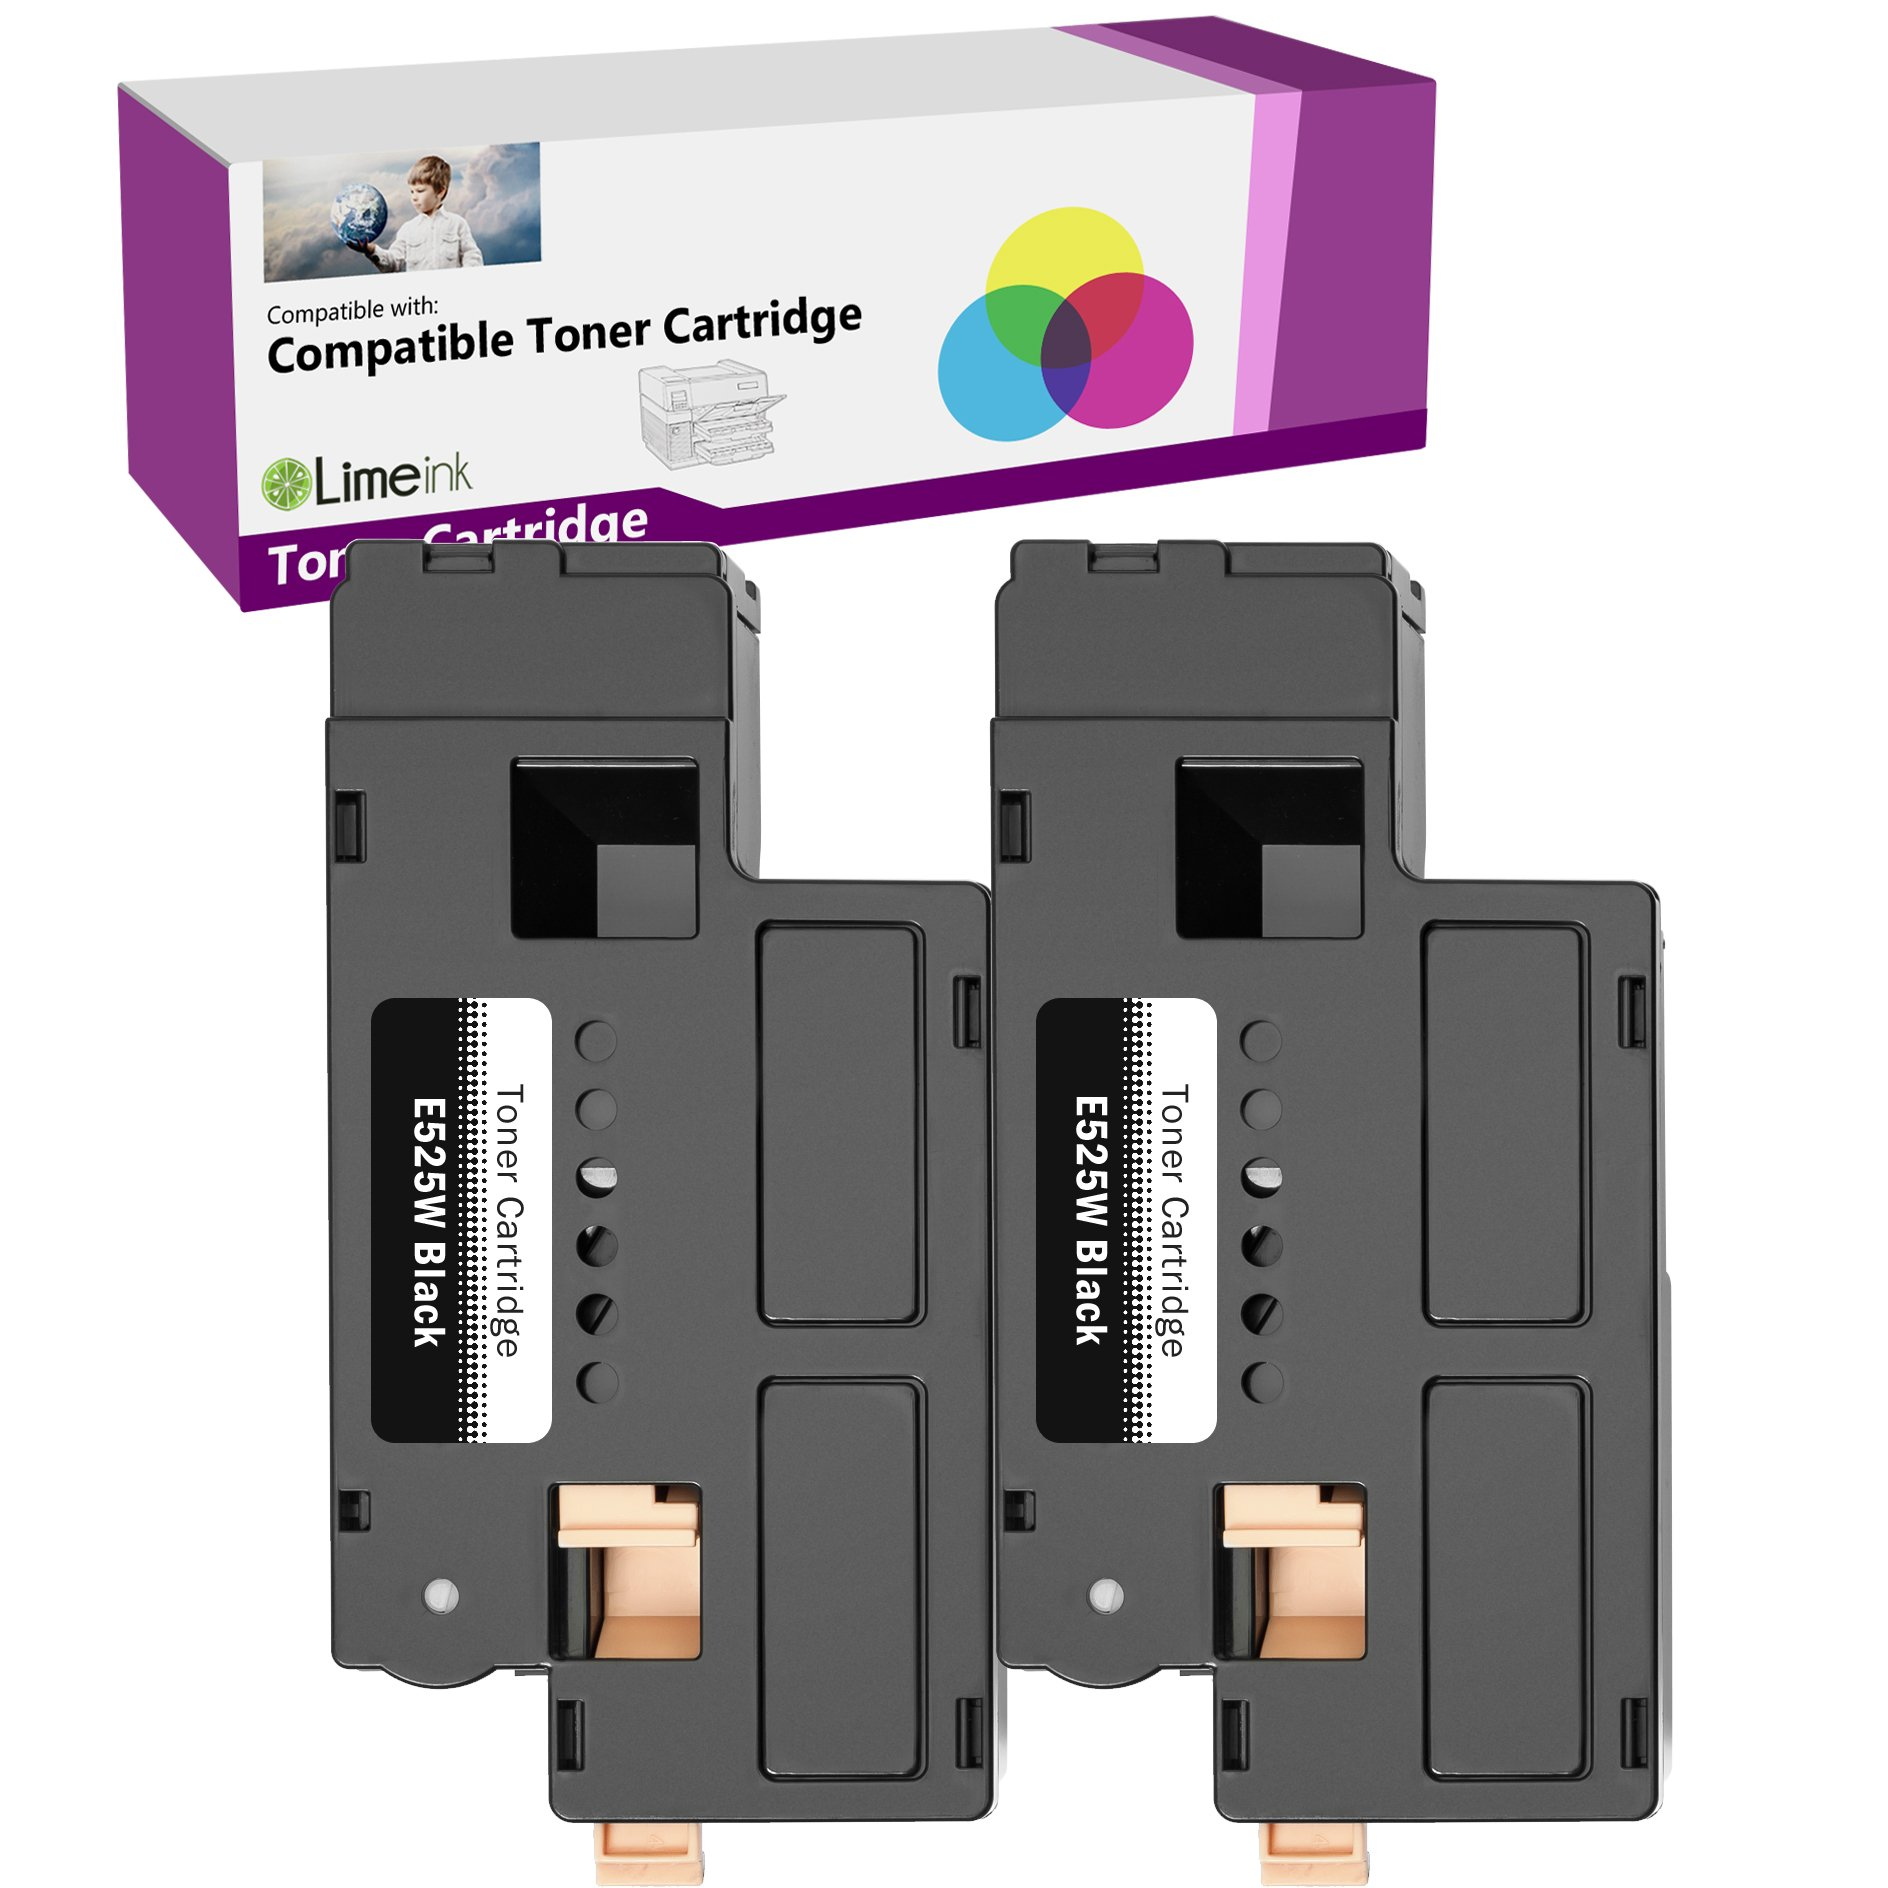 Limeink 2 Black Compatible High Yield Laser Toner Cartridges Replacement for E525W 525W E525 525 H3M8P DPV4T Compatible with E525W, E525DW Color Laser Printers Ink